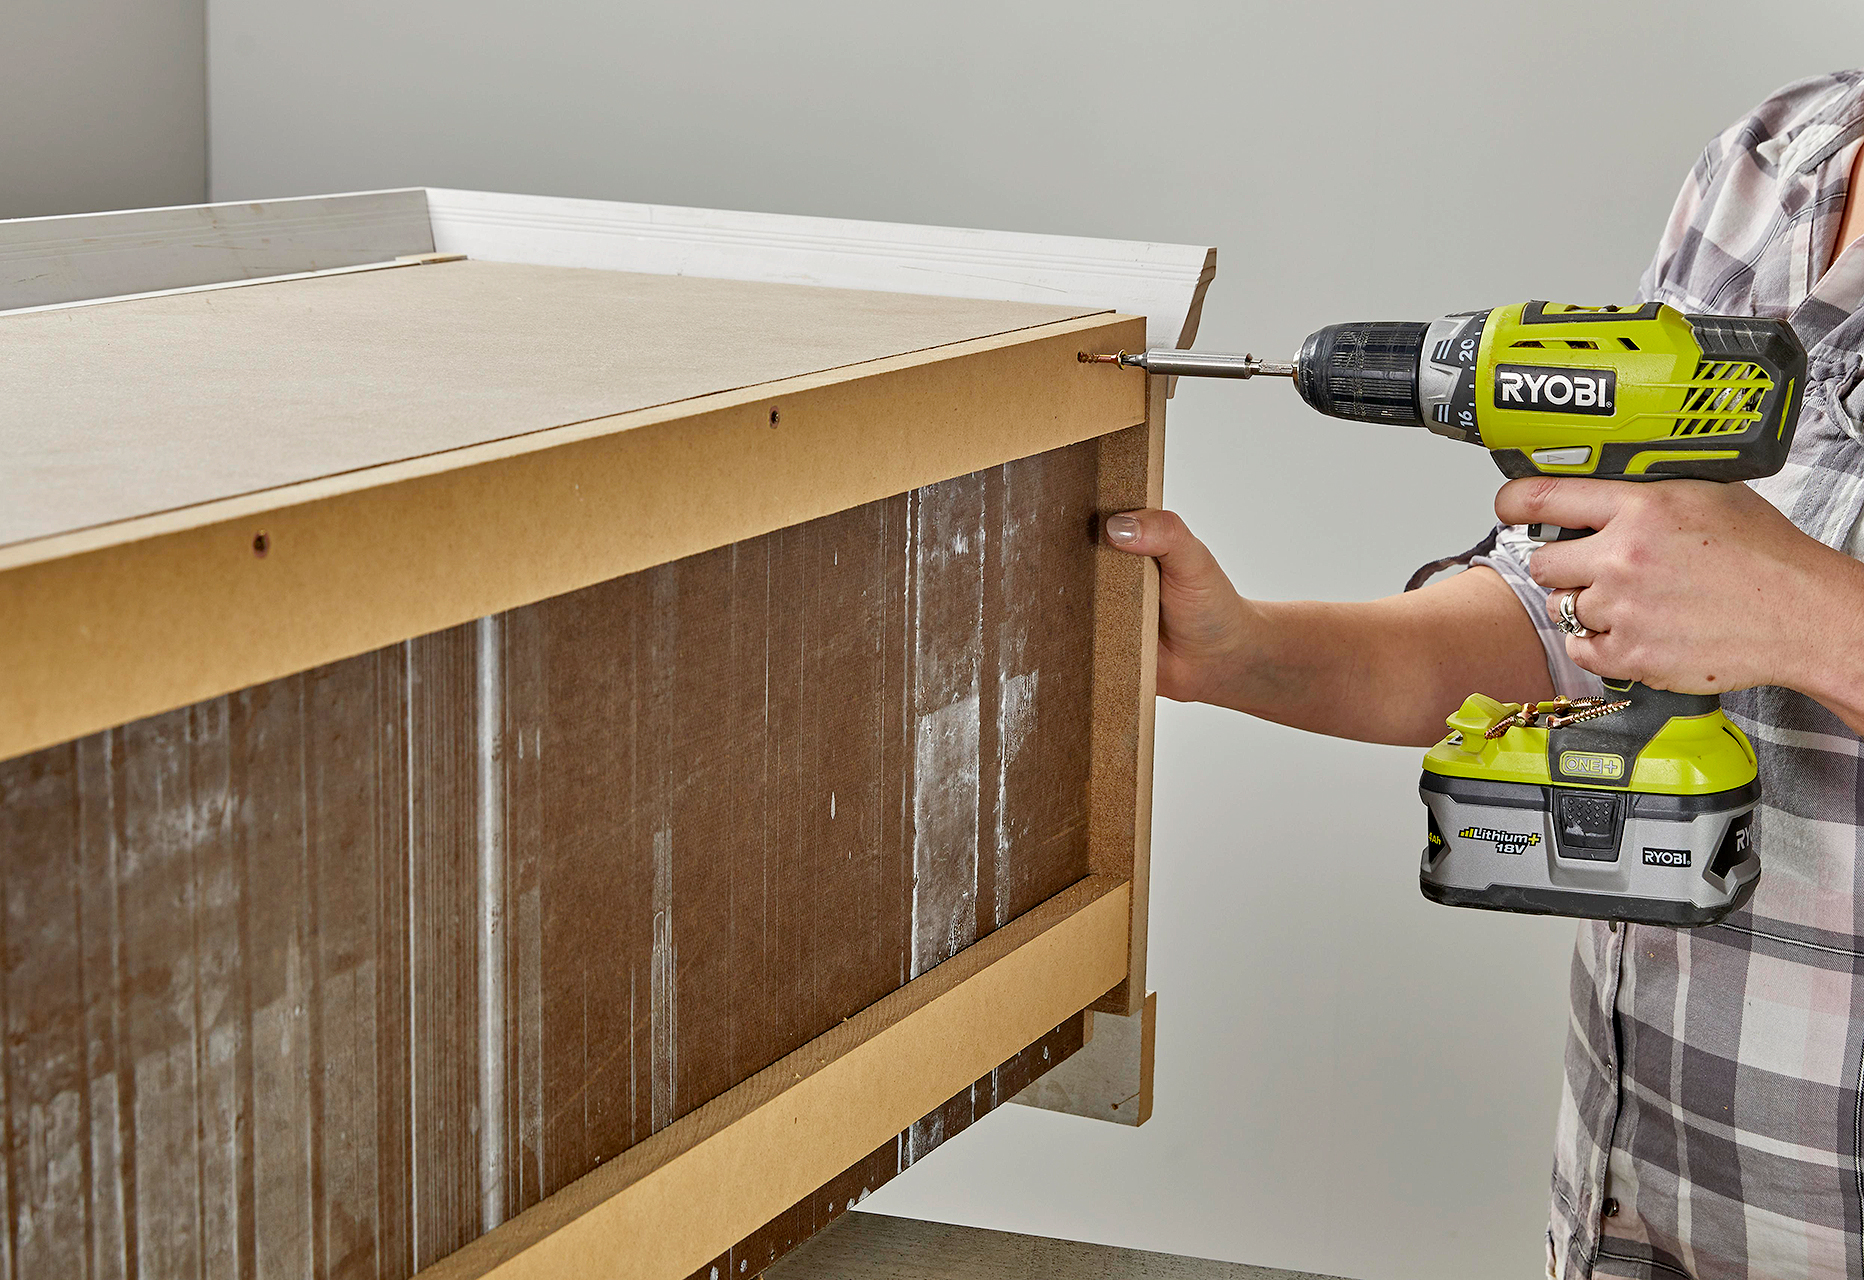 secure wood panels to back of unit